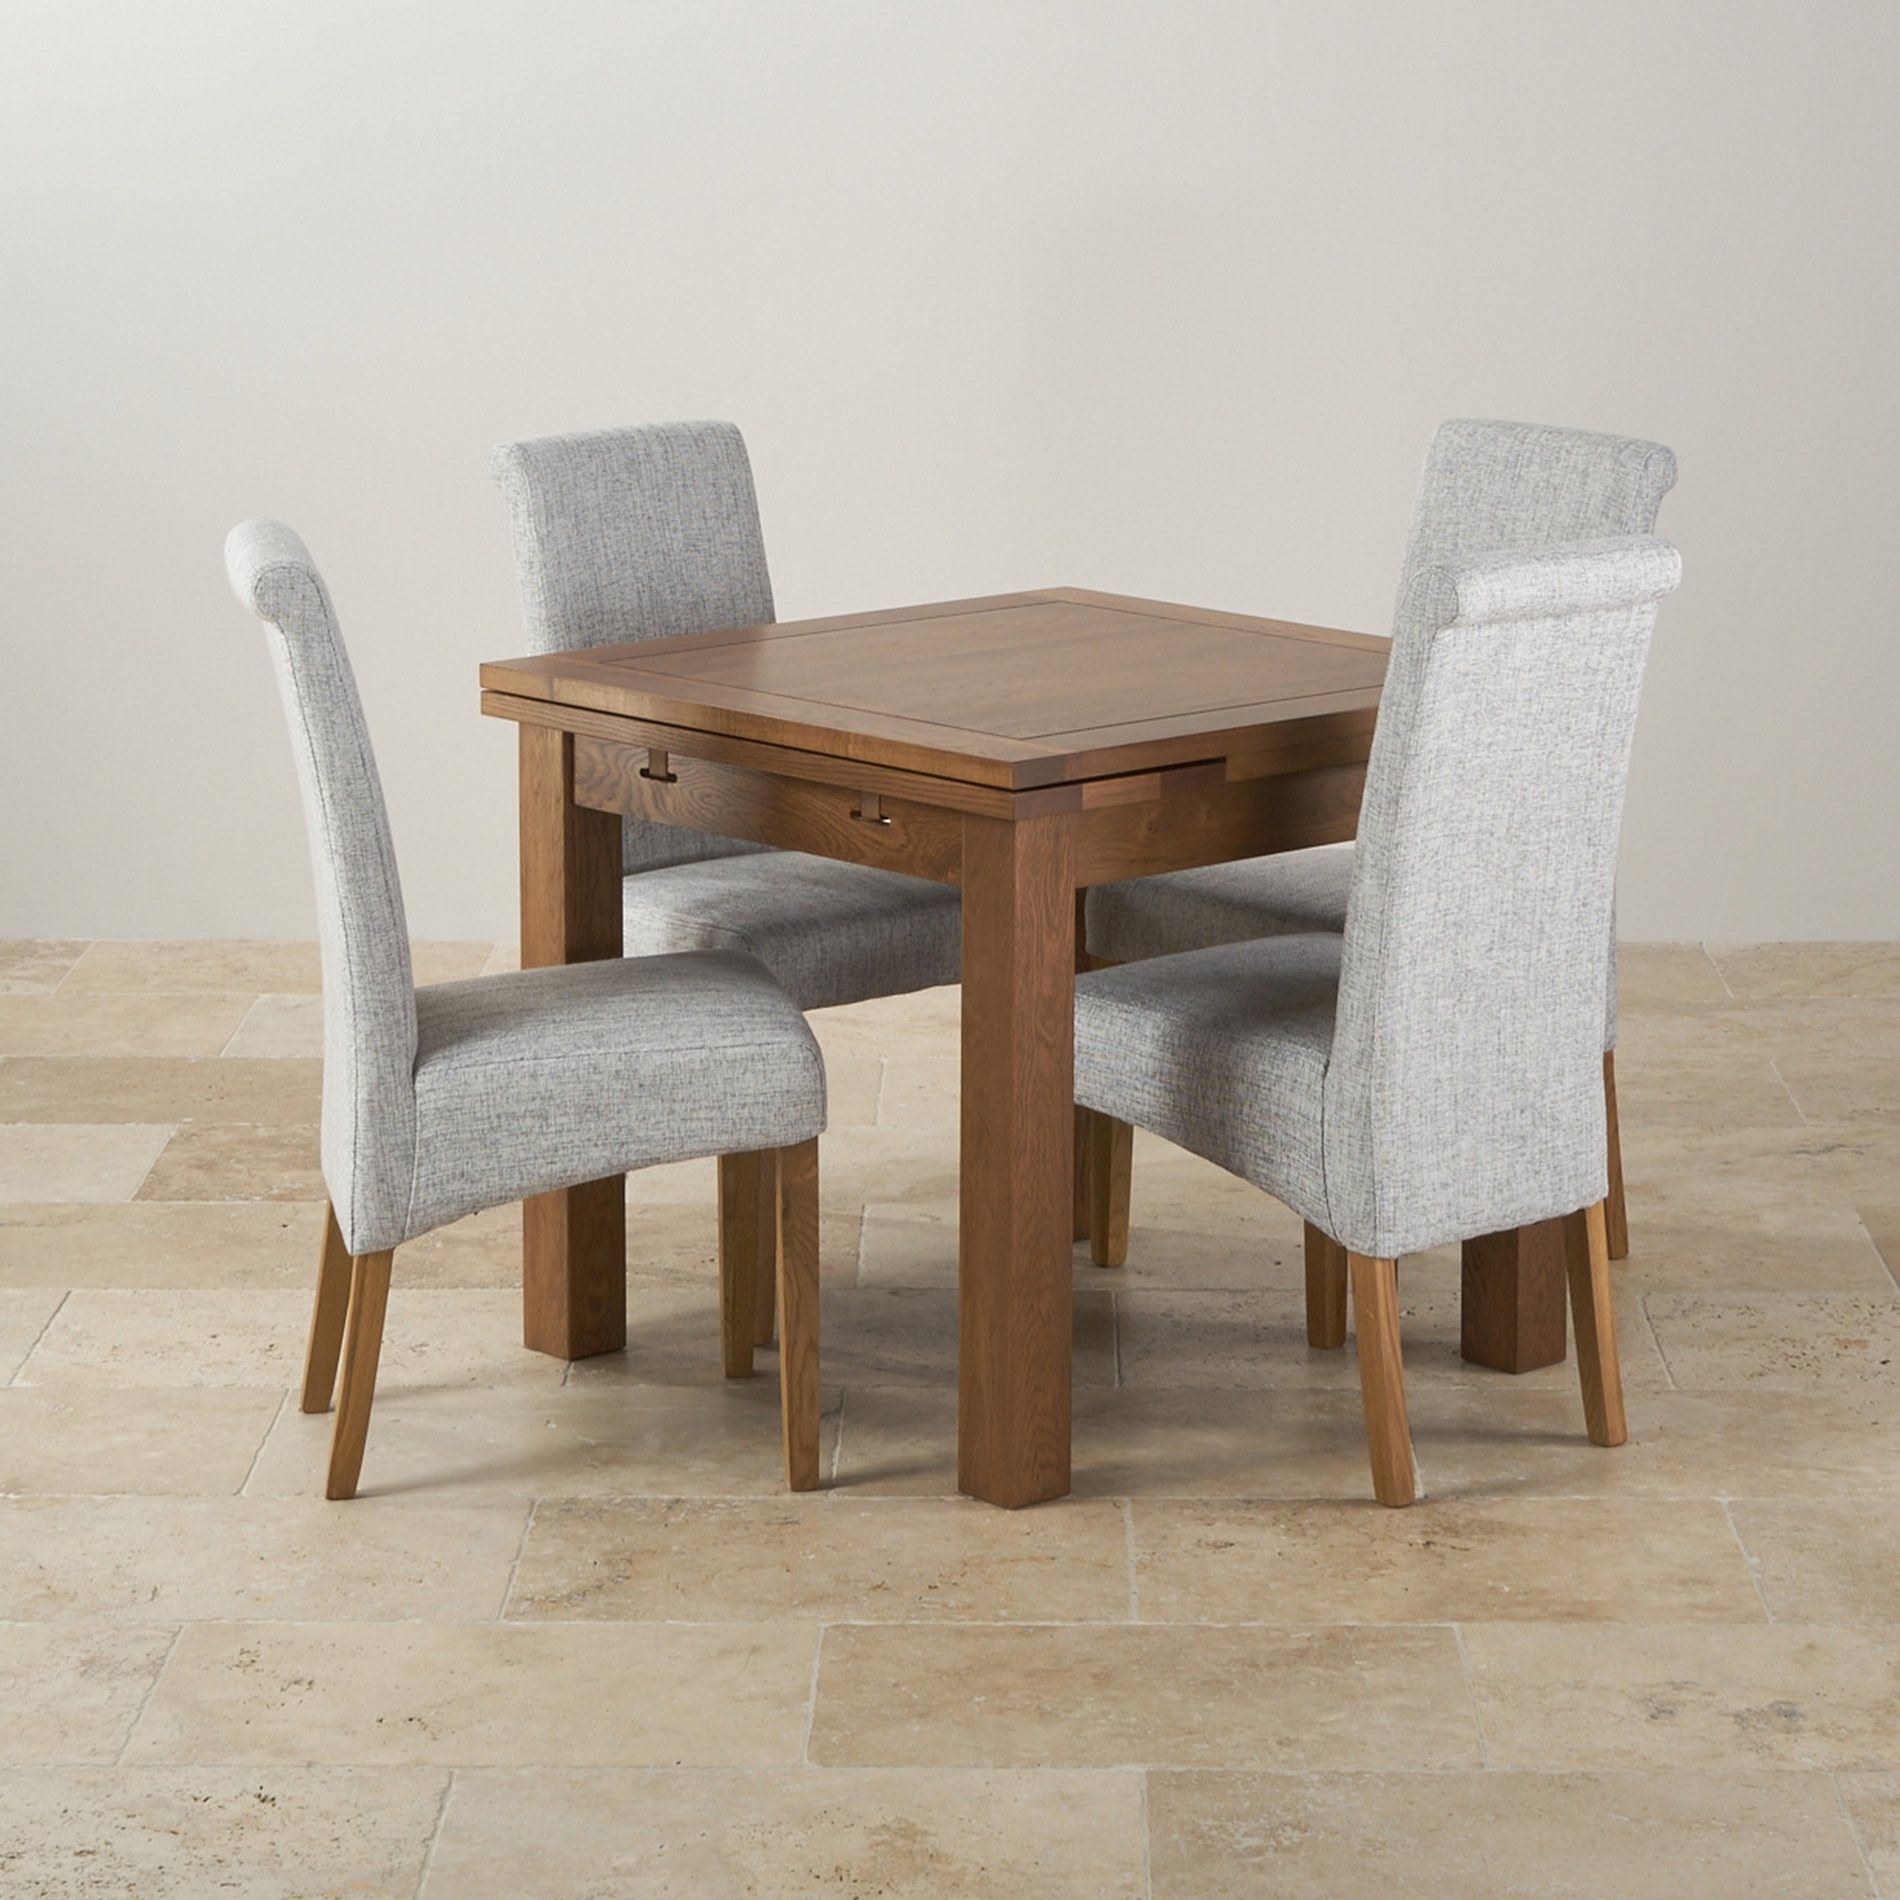 Oak Extendable Dining Tables And Chairs Within Popular London Dark Oak Ex Solid Oak Extending Dining Table And 4 Chairs (View 16 of 25)